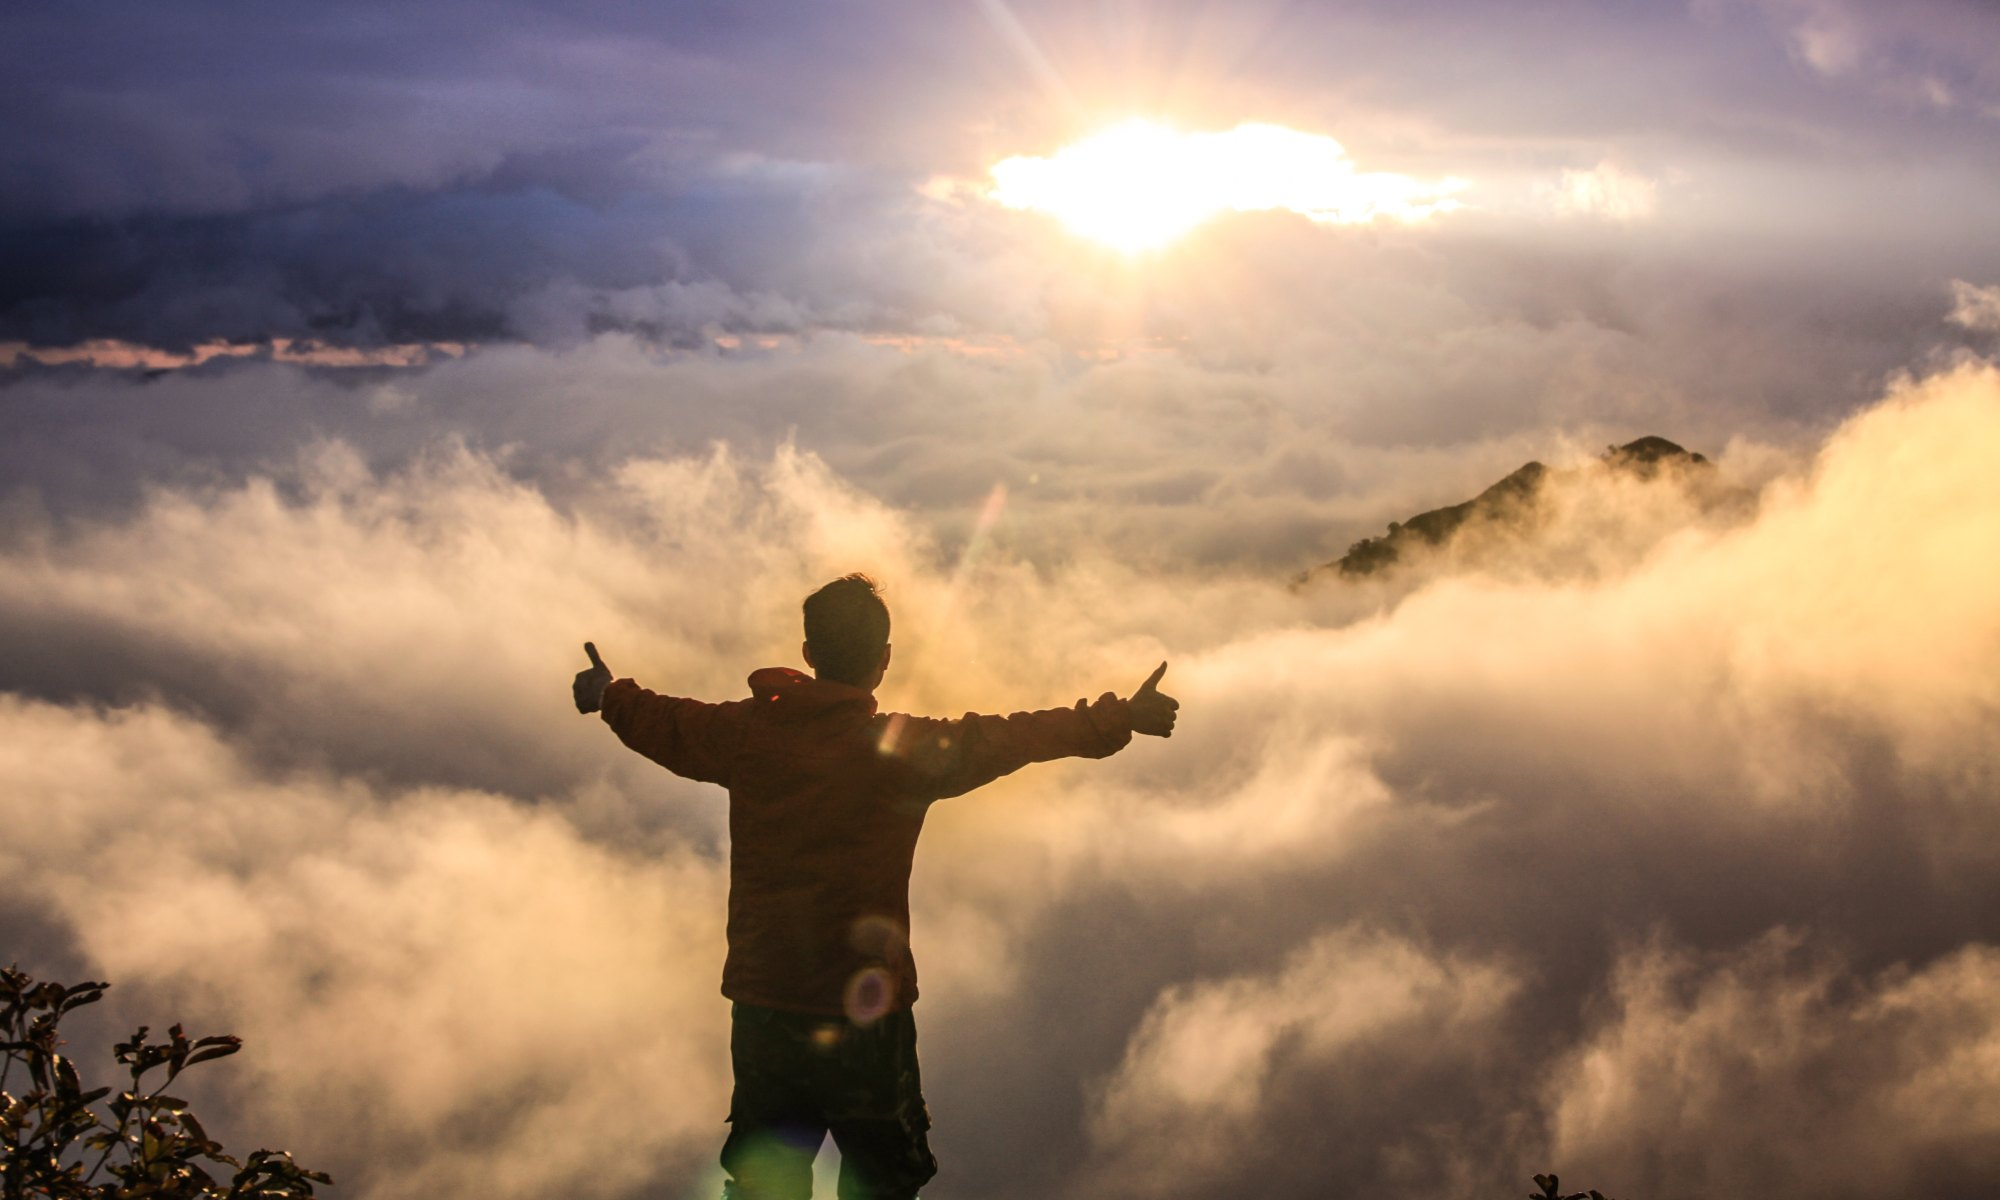 Man who has defeated depression facing clouds during golden hour